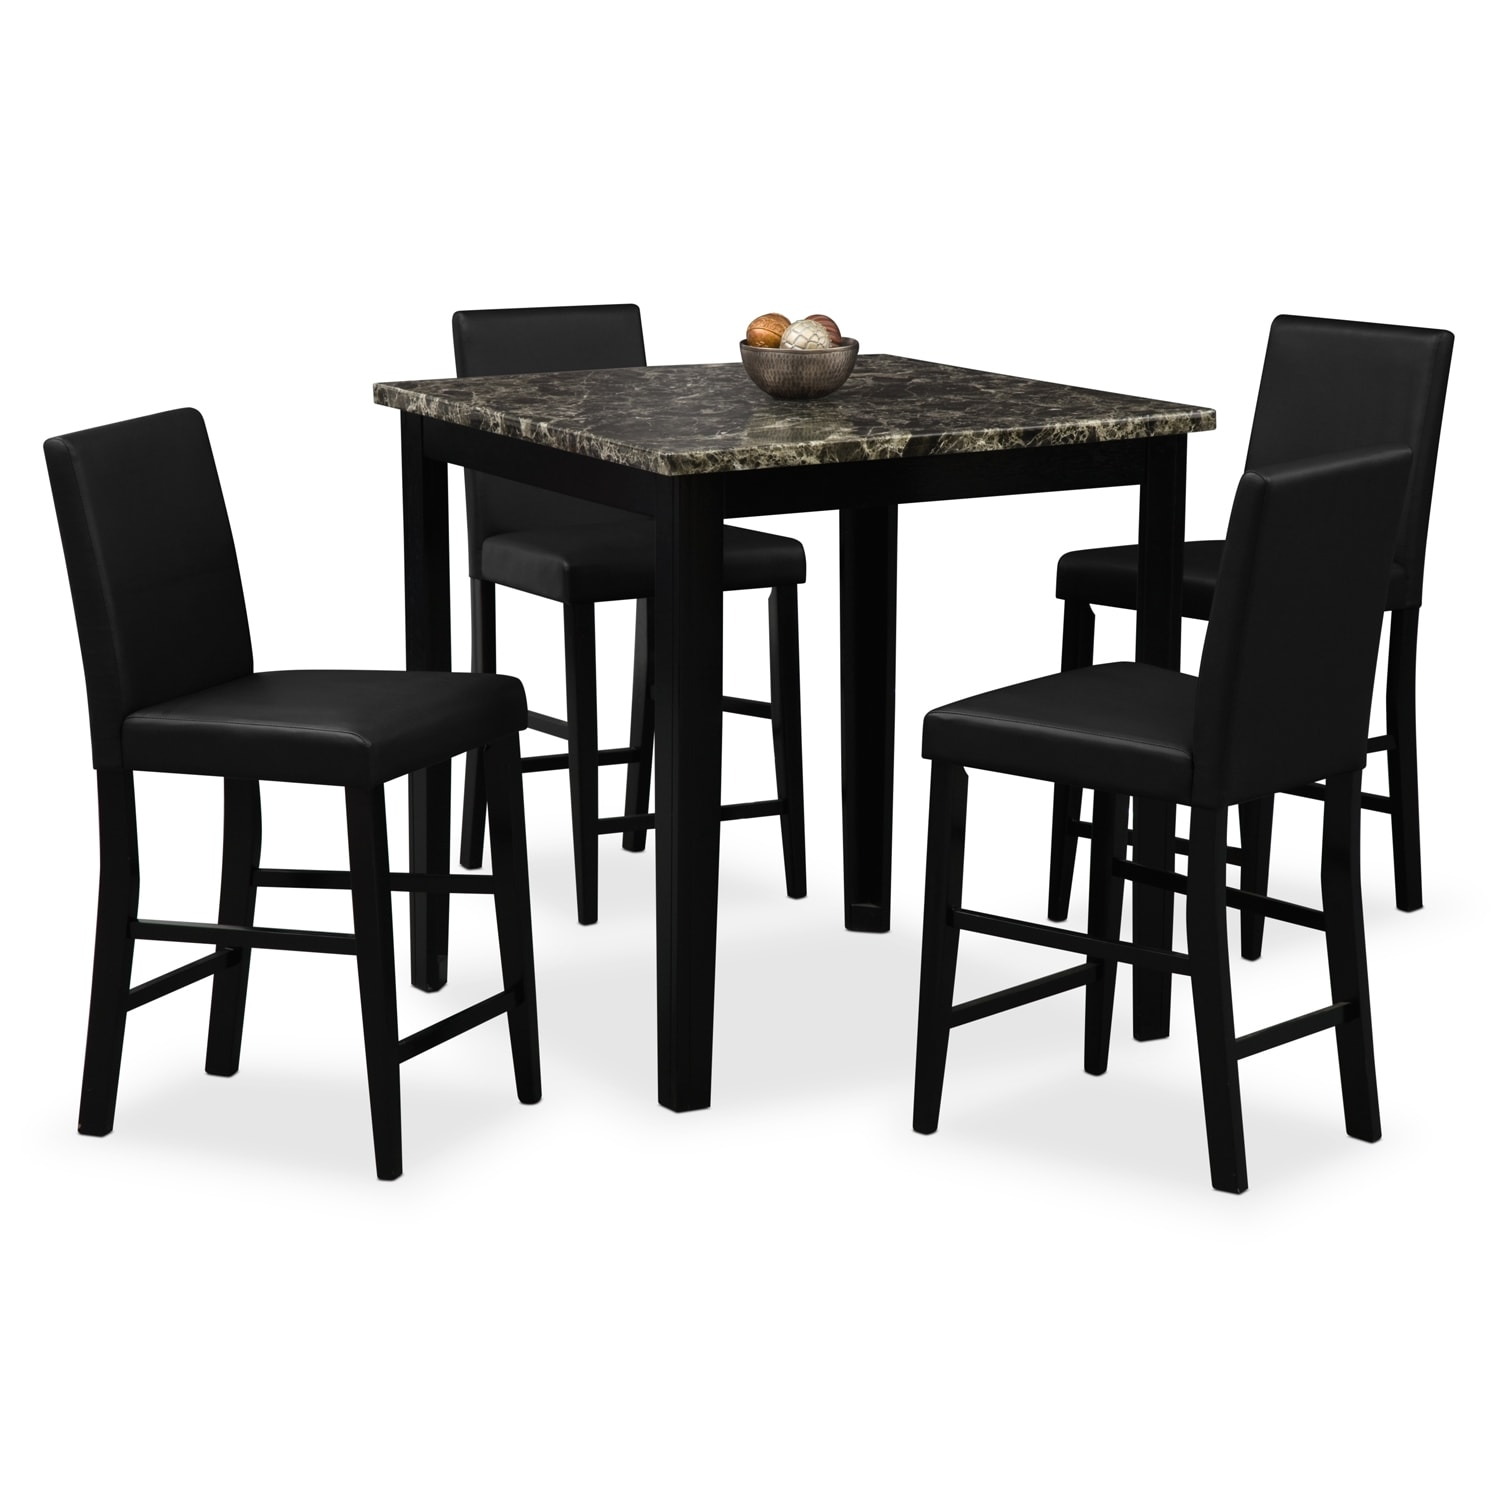 Shadow counter height table and 4 chairs black value for Dining room sets 4 chairs